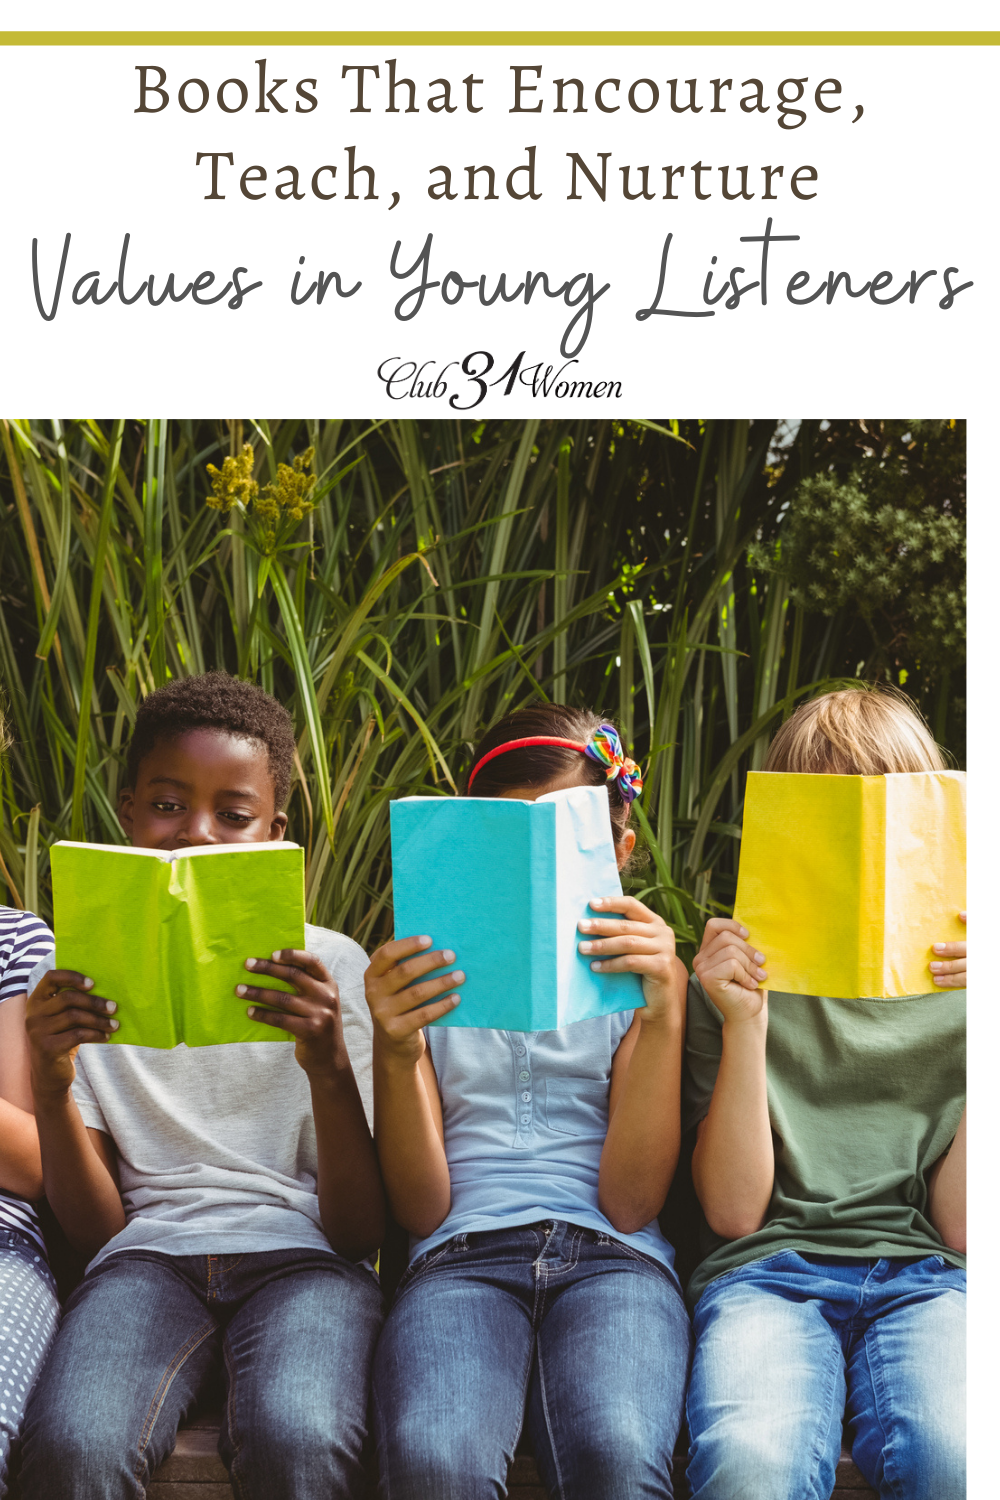 Young listeners are sponges soaking up their environment. Give them good literature with good values and it will shape their character. via @Club31Women